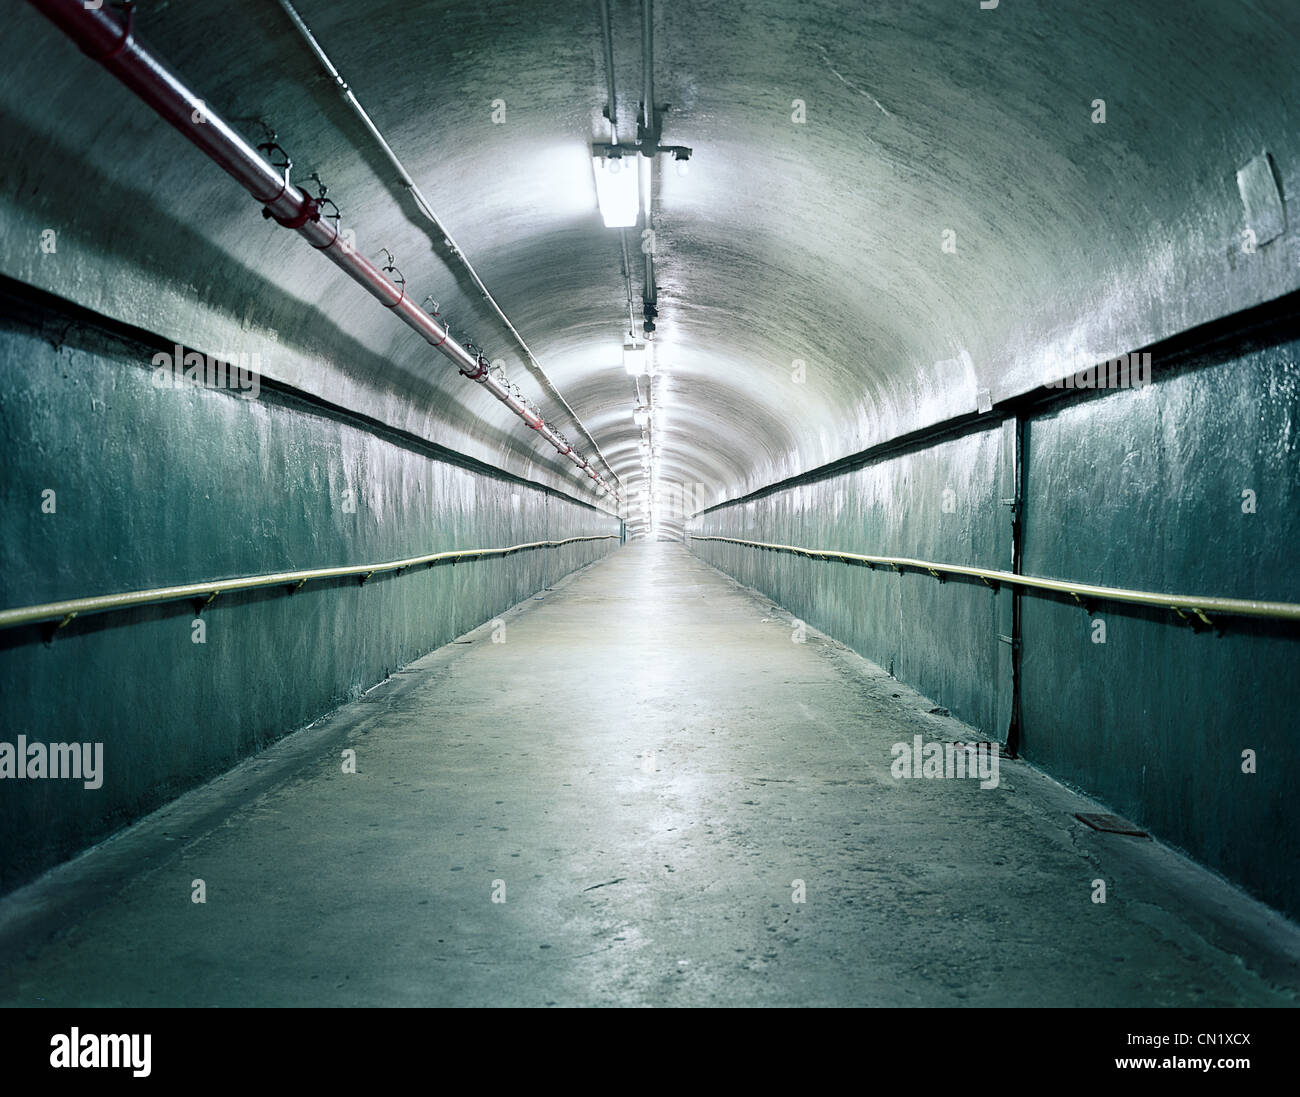 Empty tunnel, North Carolina, USA - Stock Image